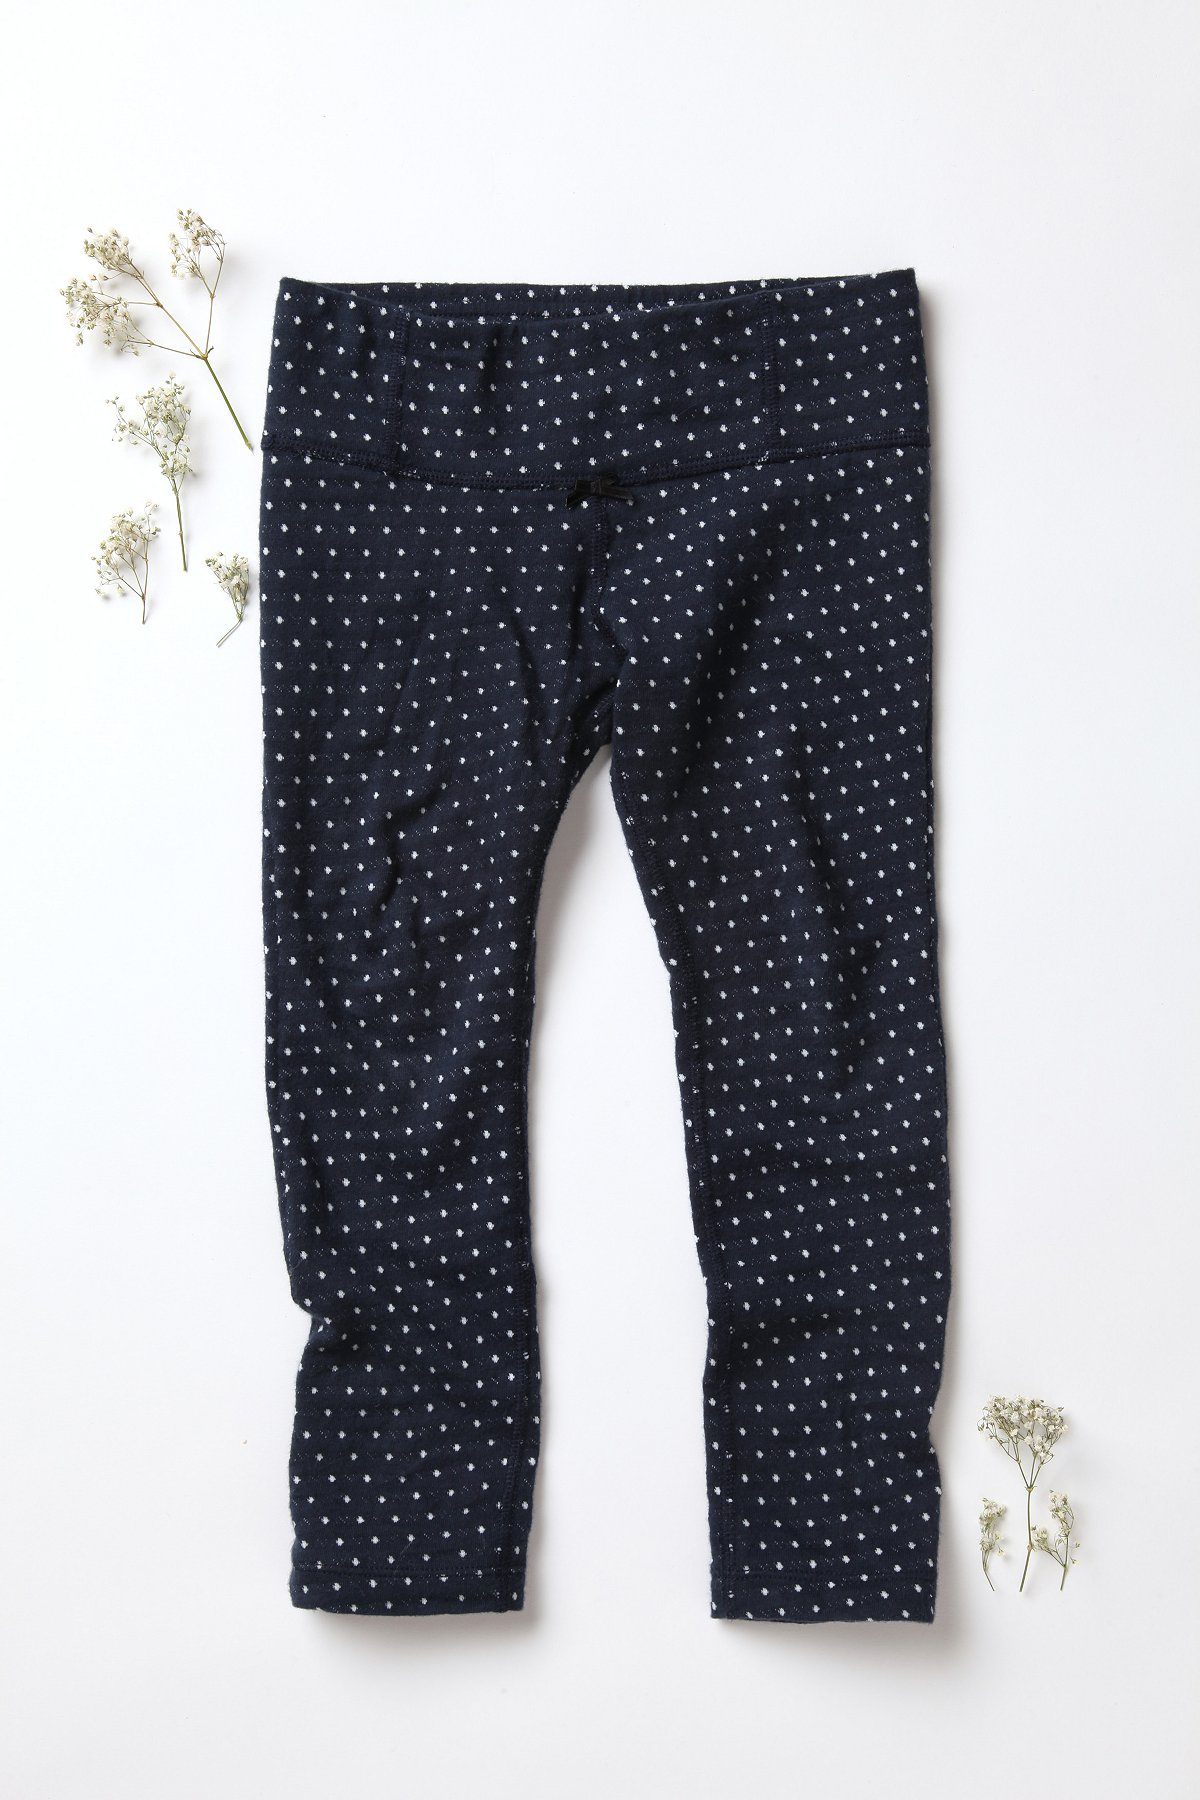 Wee People Playtime Polkadot Legging